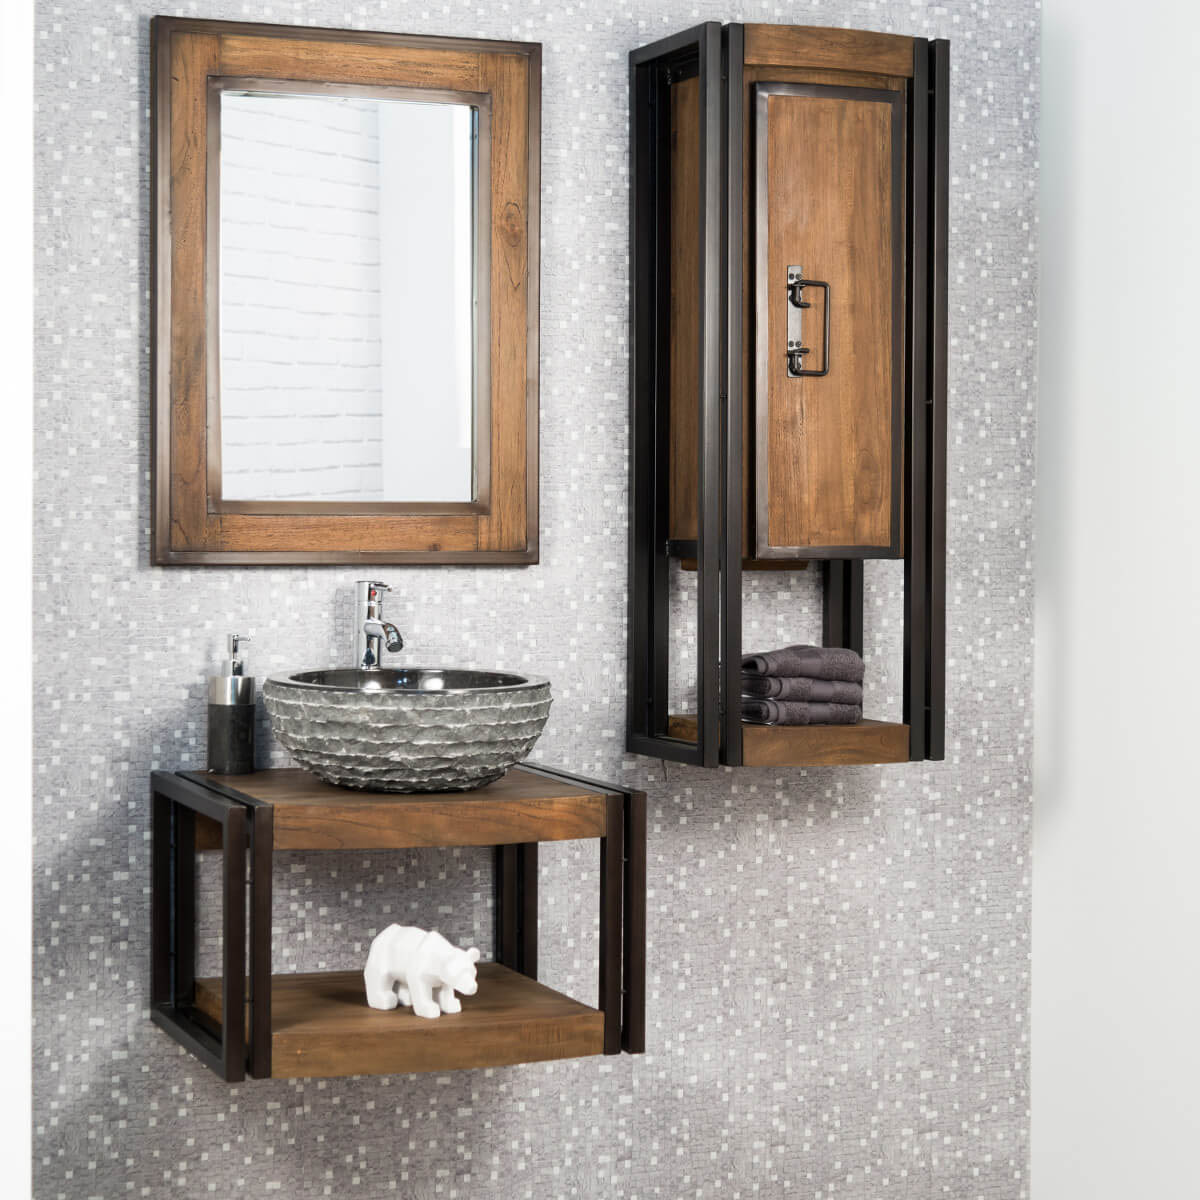 miroir salle de bain bois m tal 60x80 cm. Black Bedroom Furniture Sets. Home Design Ideas